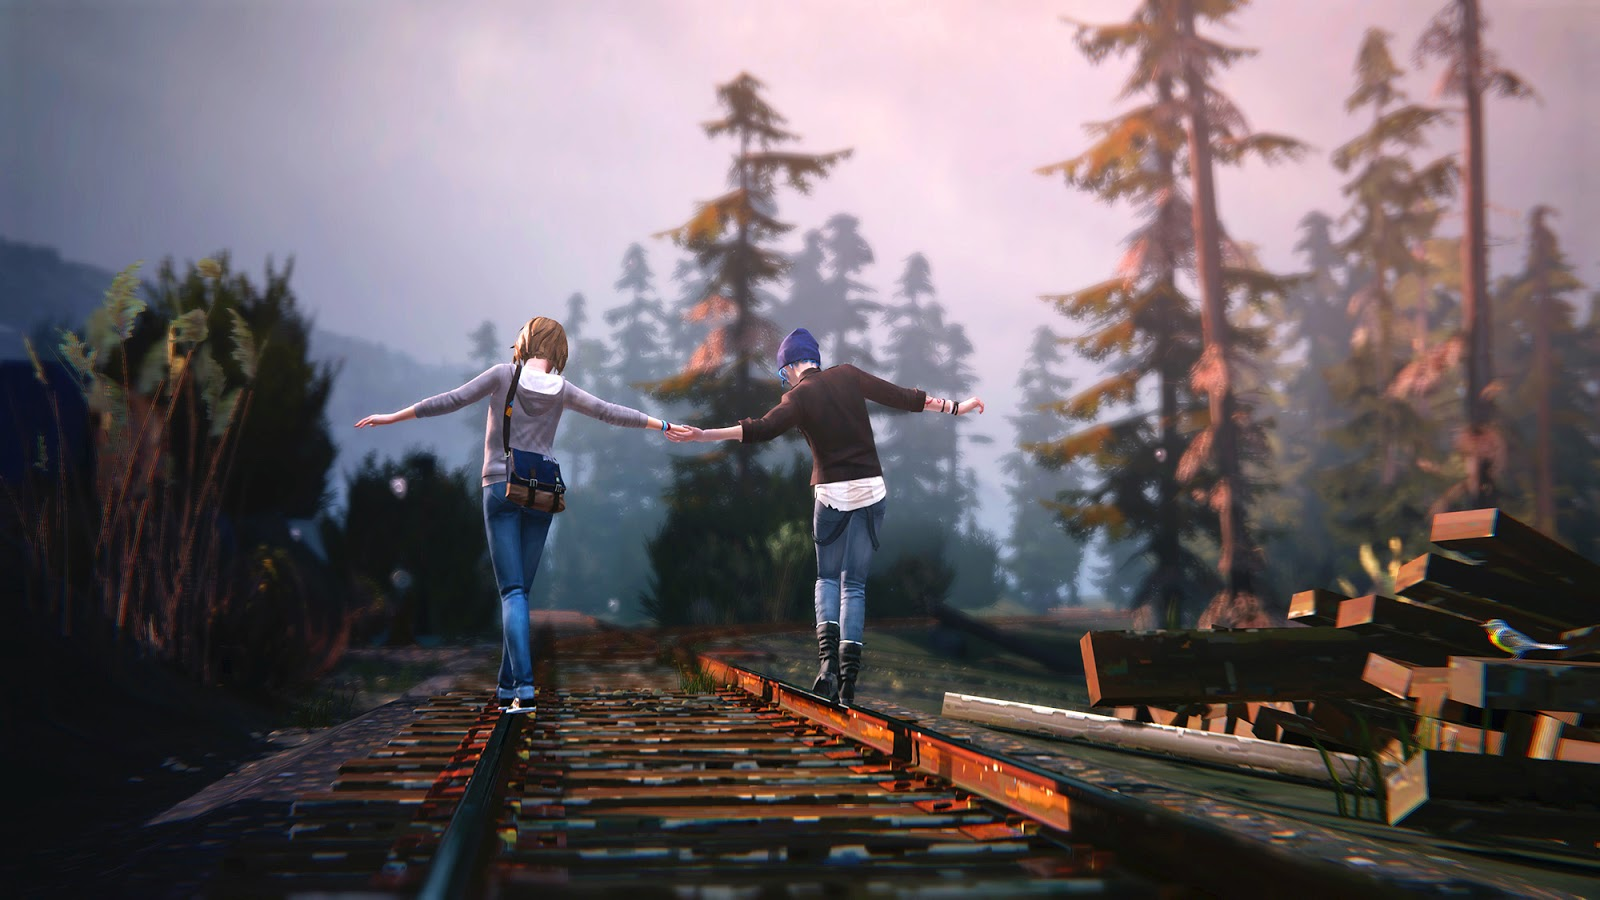 life is strange review, life is strange ps4 review, girly gaming, life is strange game review, games for girls, girl games